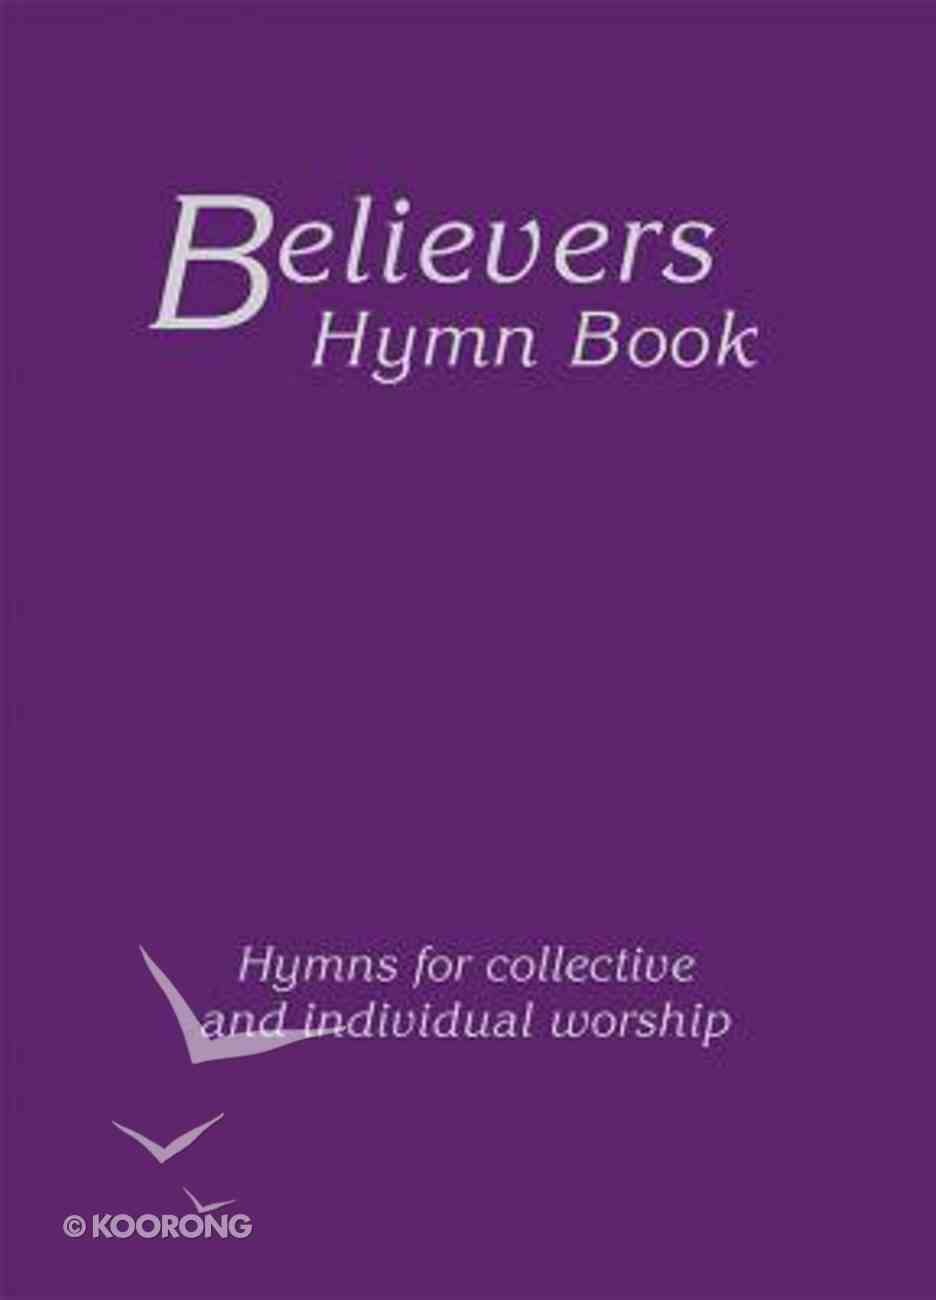 Believers Hymn Book Large Print Edition (10 Point Font) Hardback